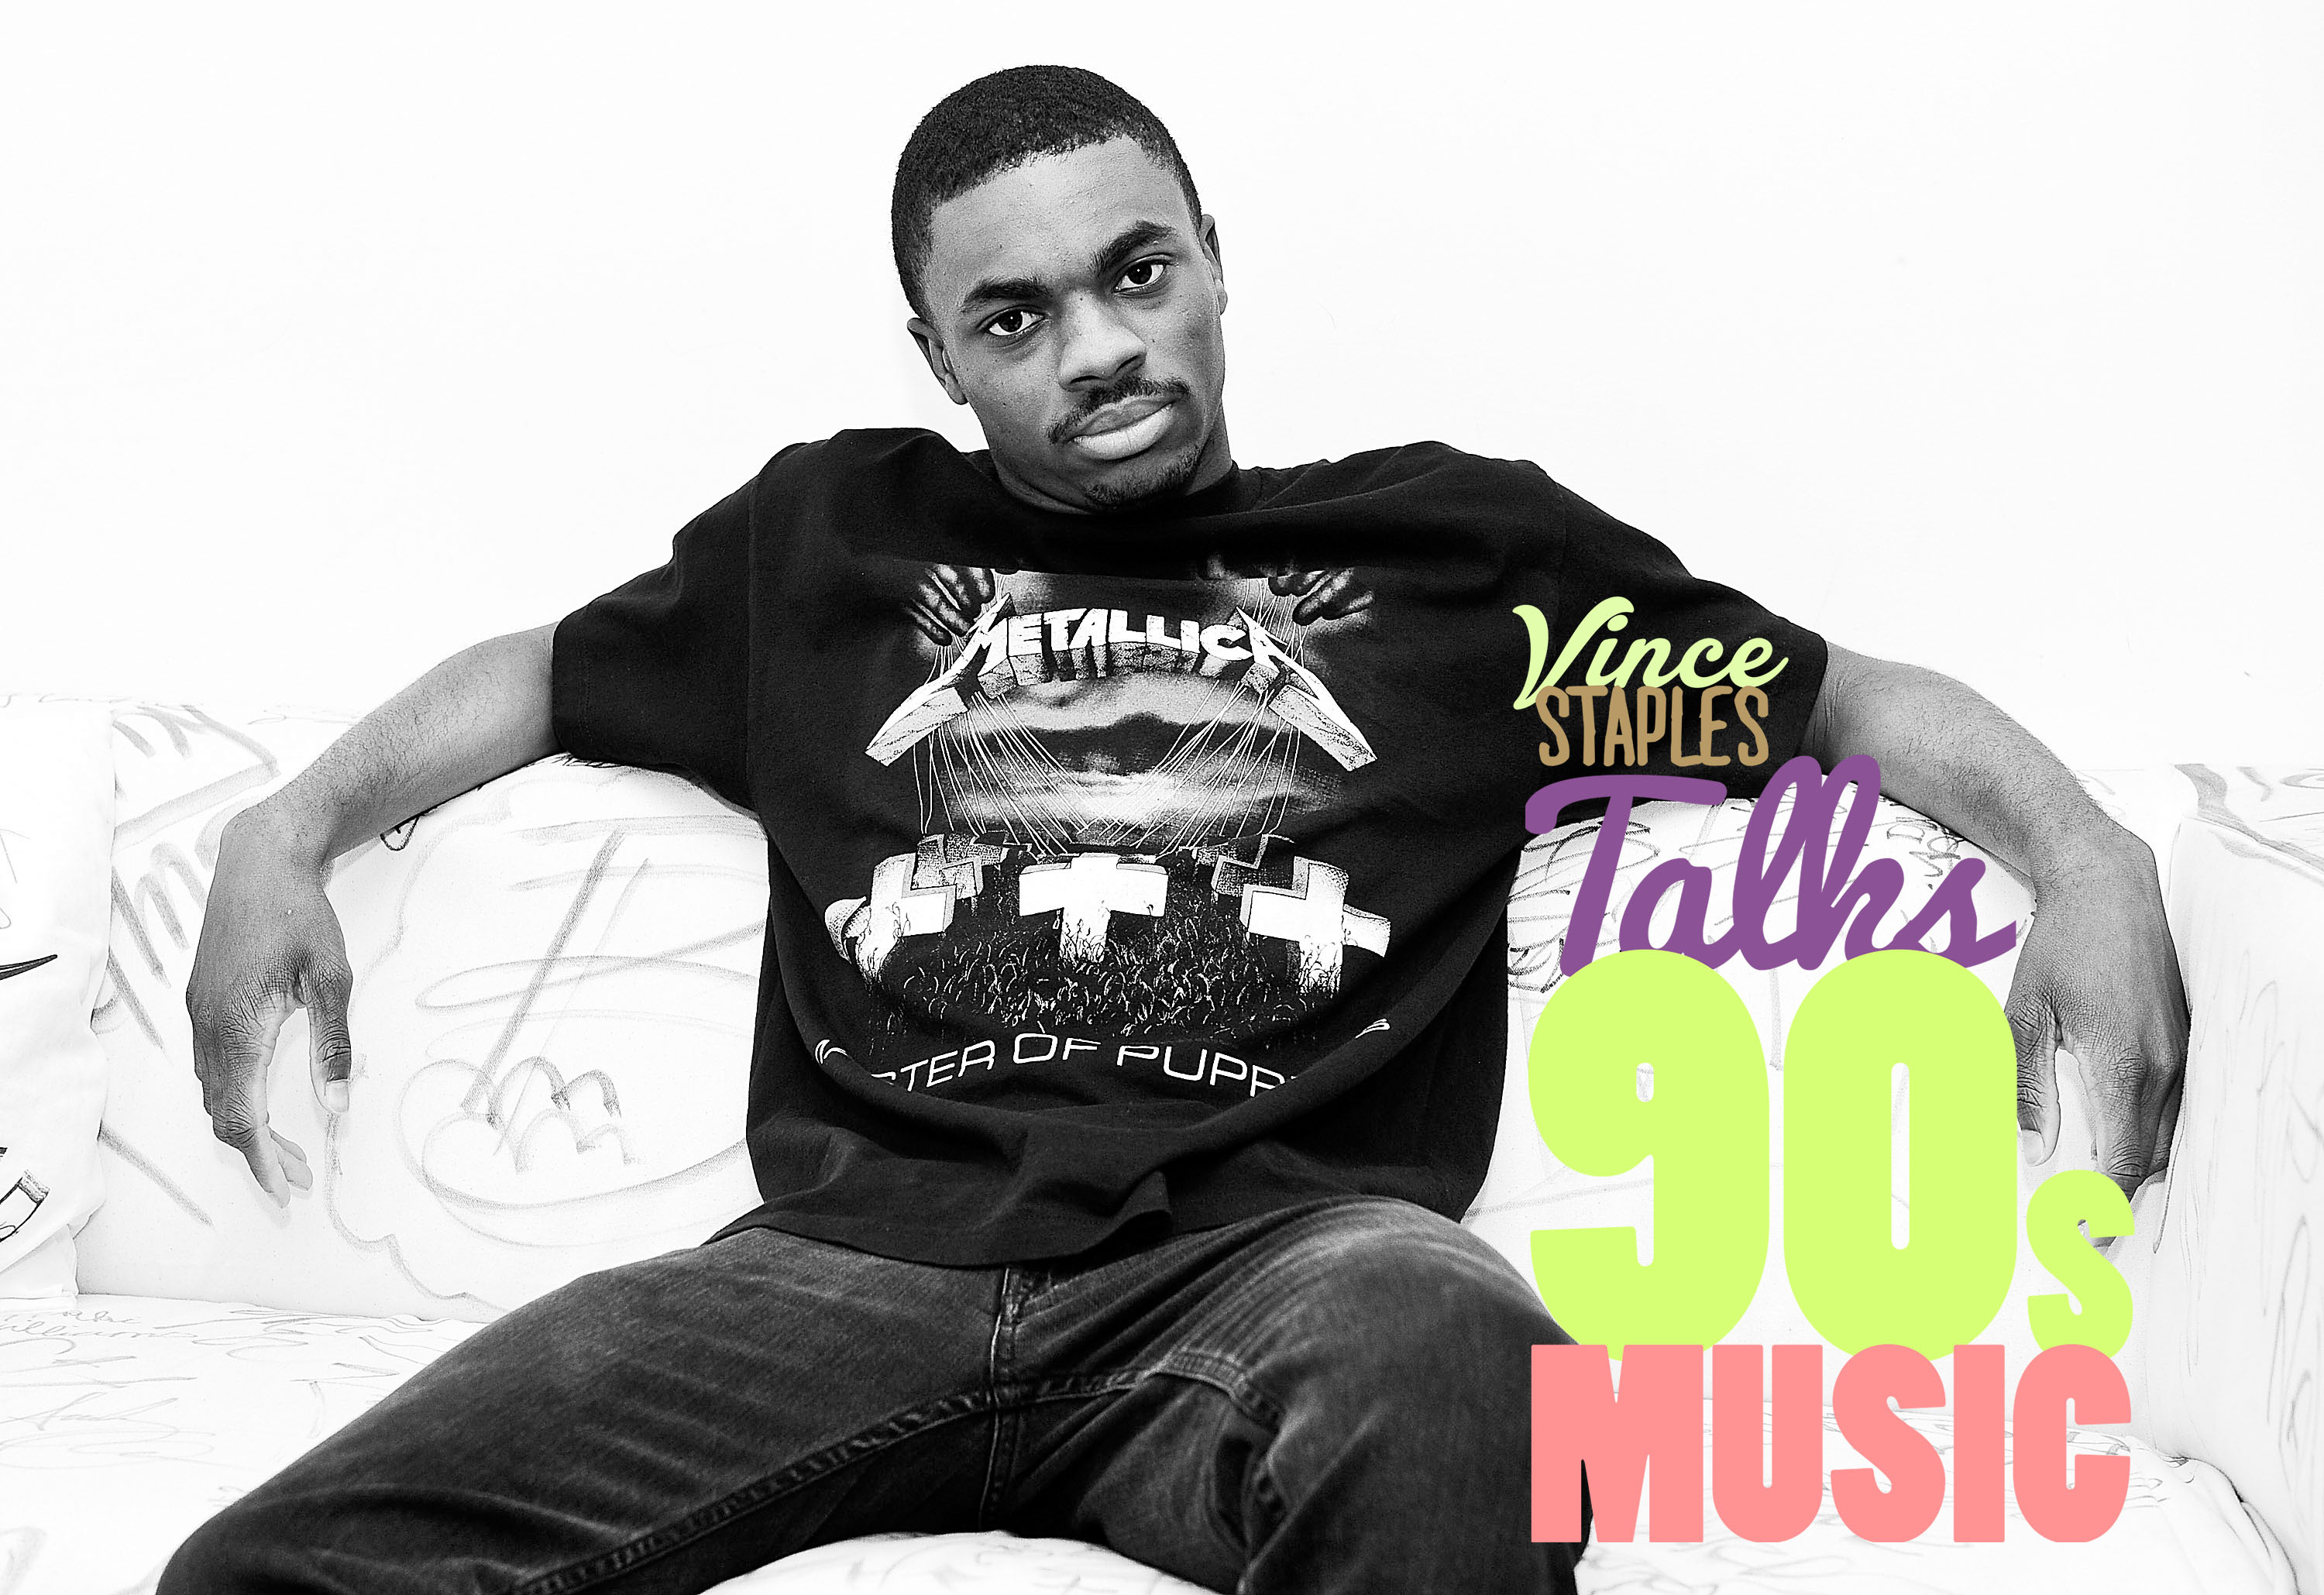 NEW YORK, NY - JULY 23: (Editors Note: Image has been converted to black and white) Rapper Vince Staples visits Music Choice on July 23, 2015 in New York City.  (Photo by Daniel Zuchnik/Getty Images)